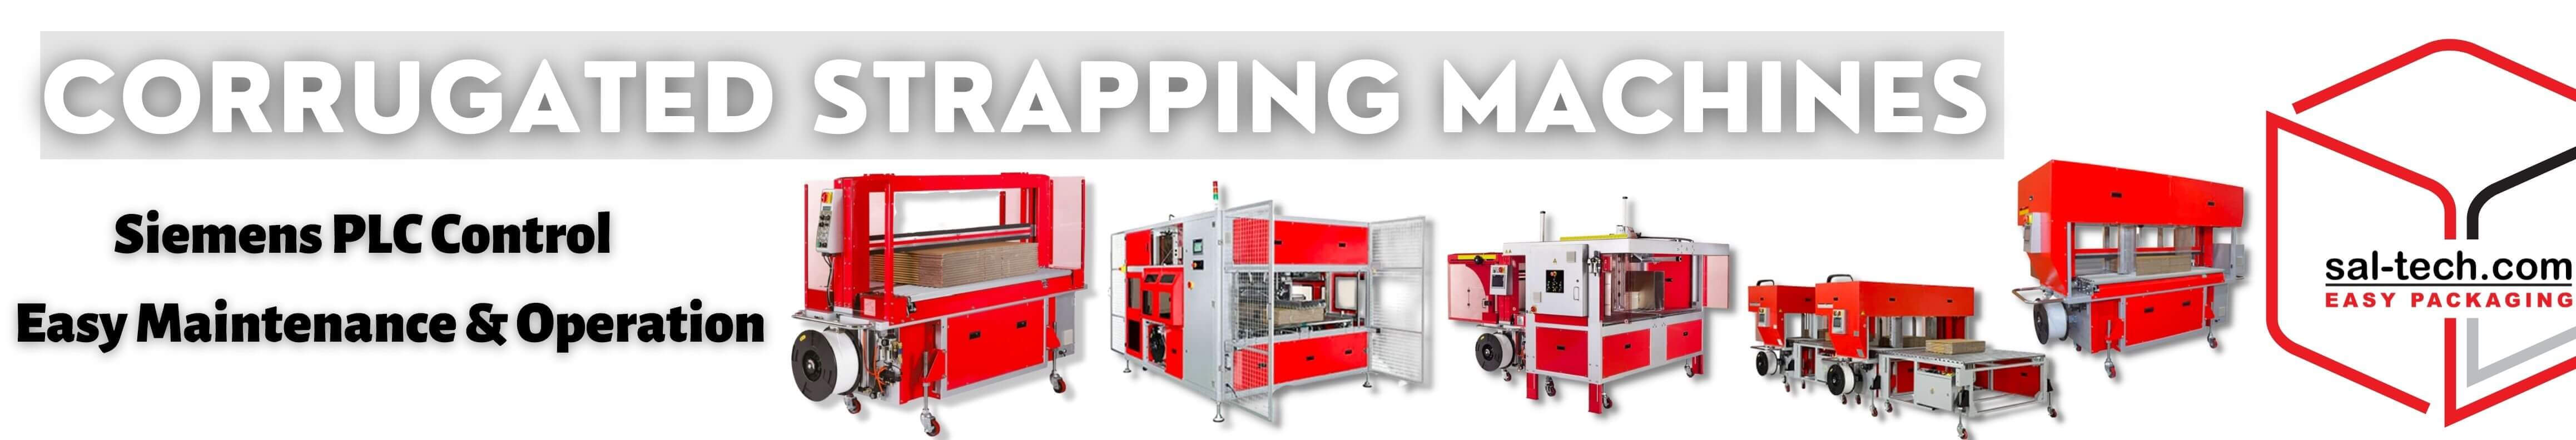 CORRUGATED STRAPPING MACHINES